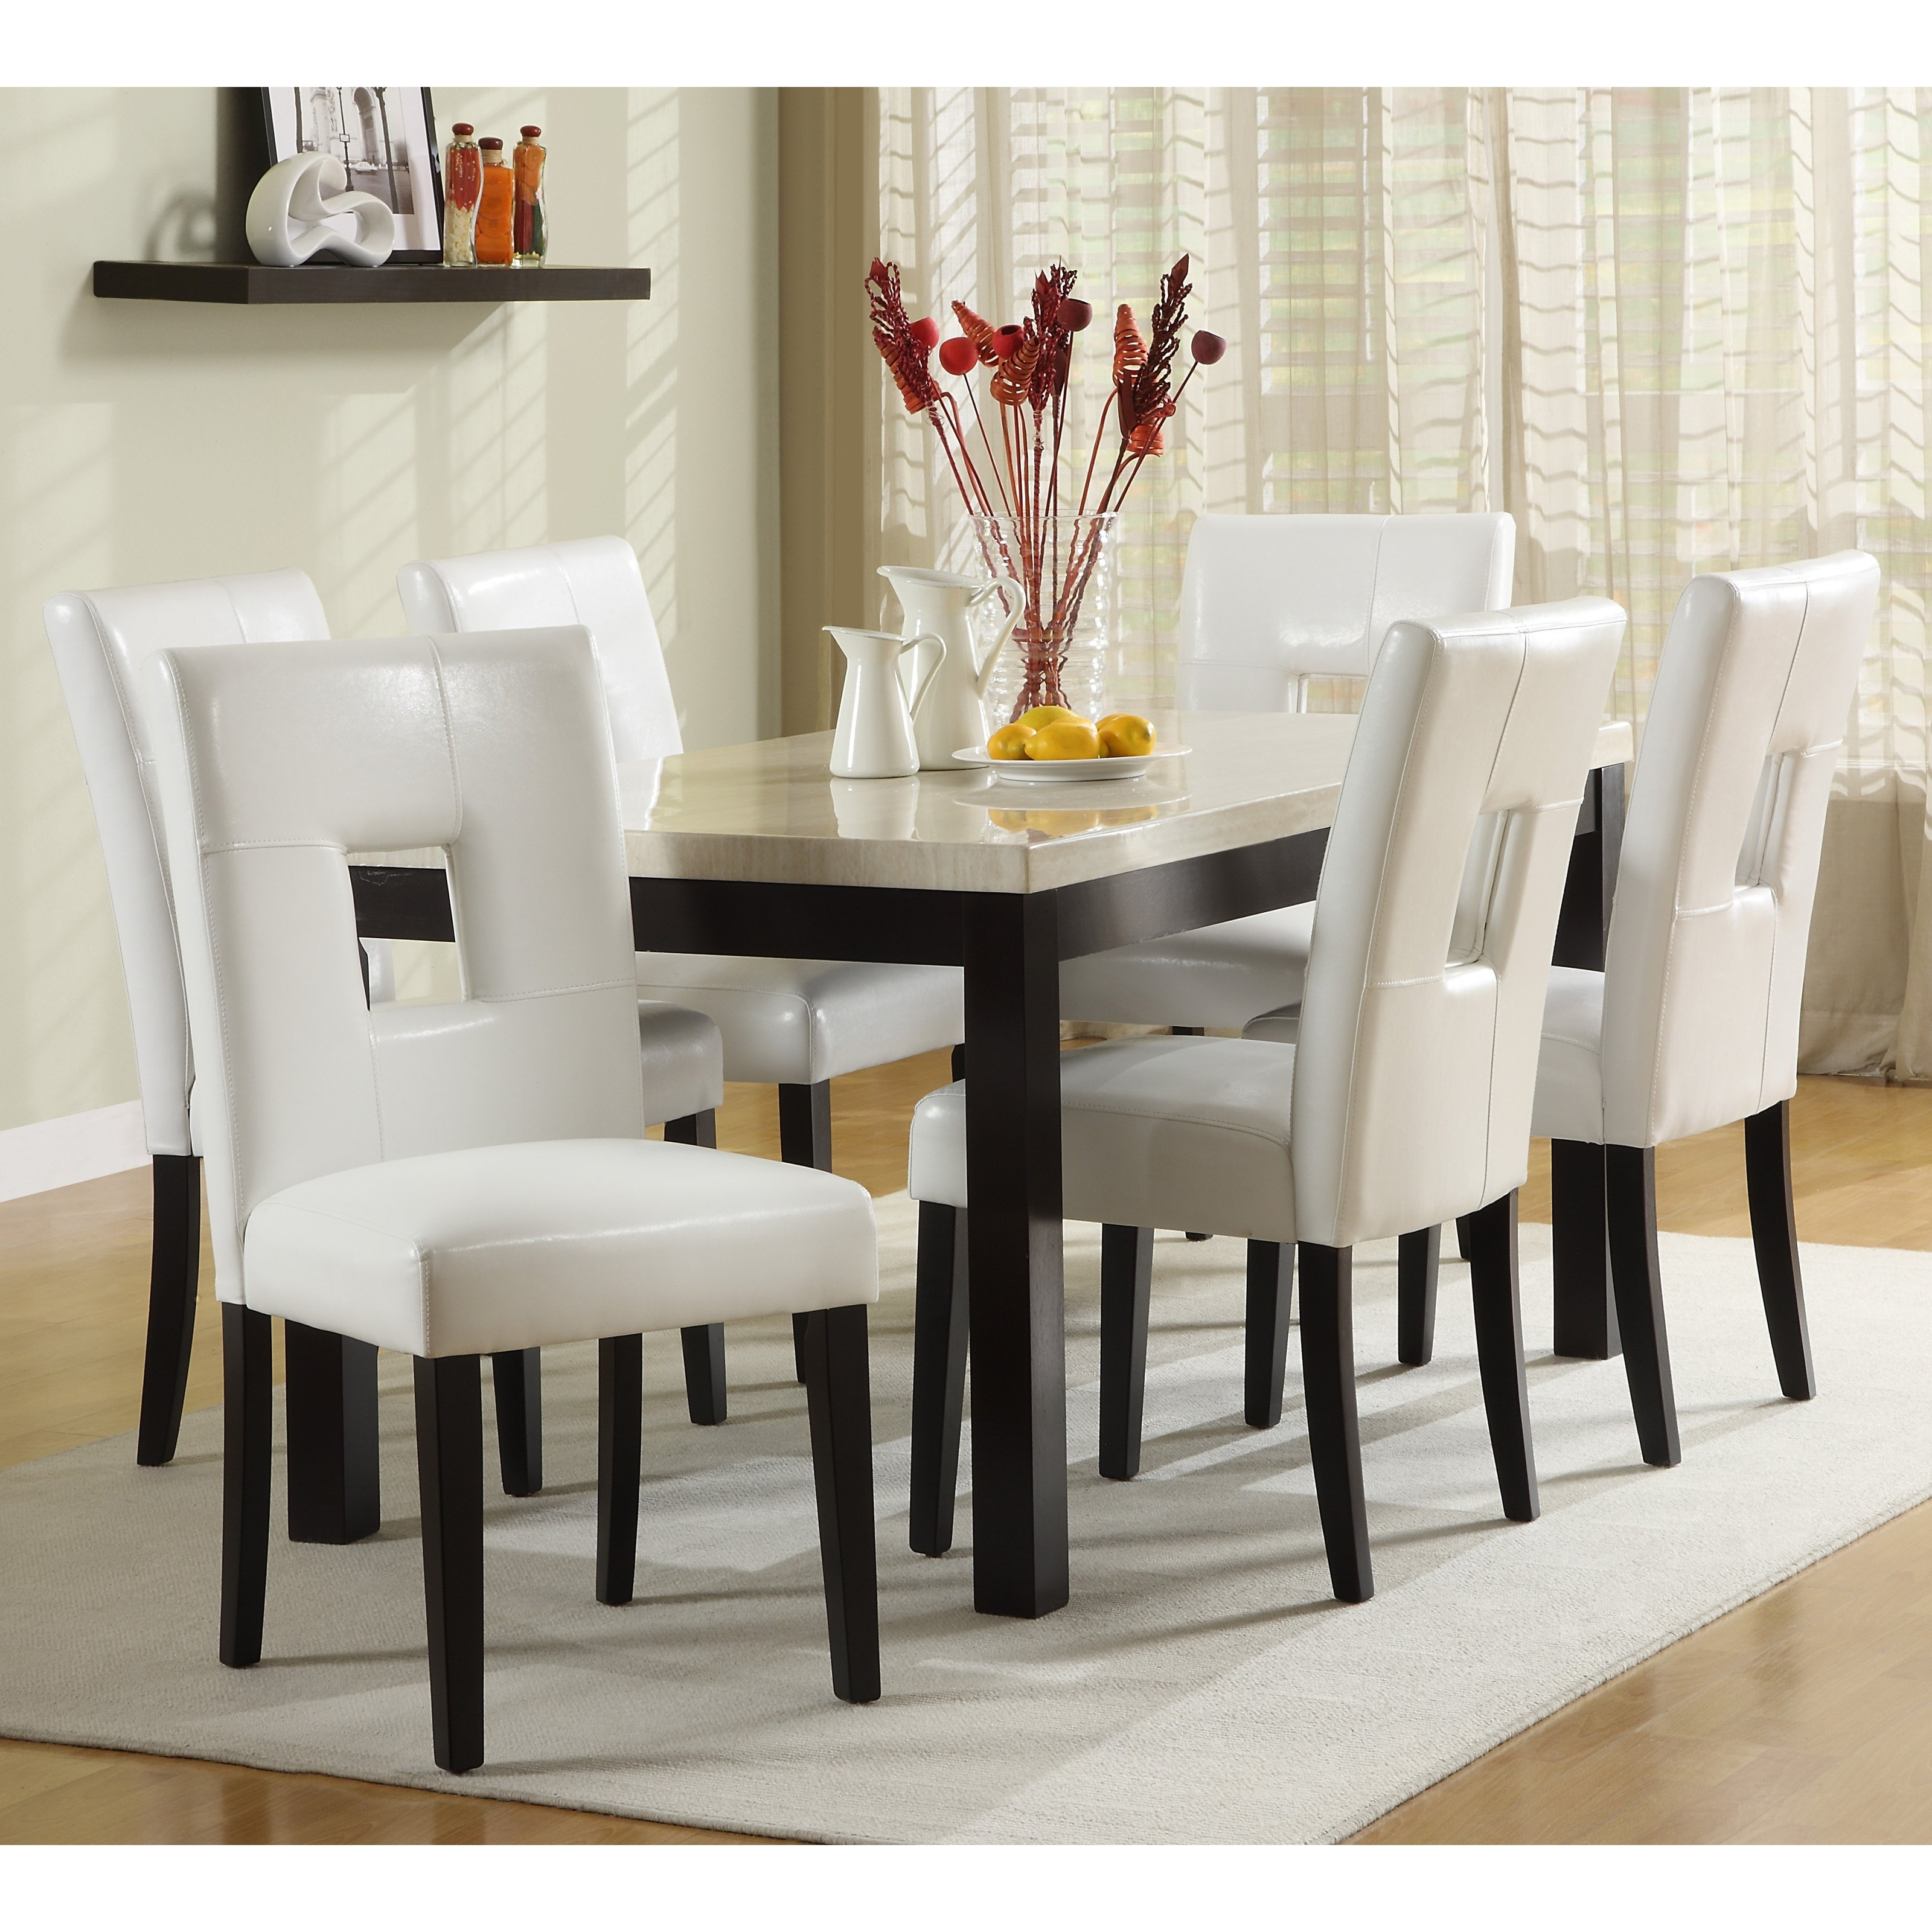 Cream Lacquer Dining Tables Pertaining To 2017 Elegant Interesting Dining Room Chairs For Dining Room (View 7 of 25)